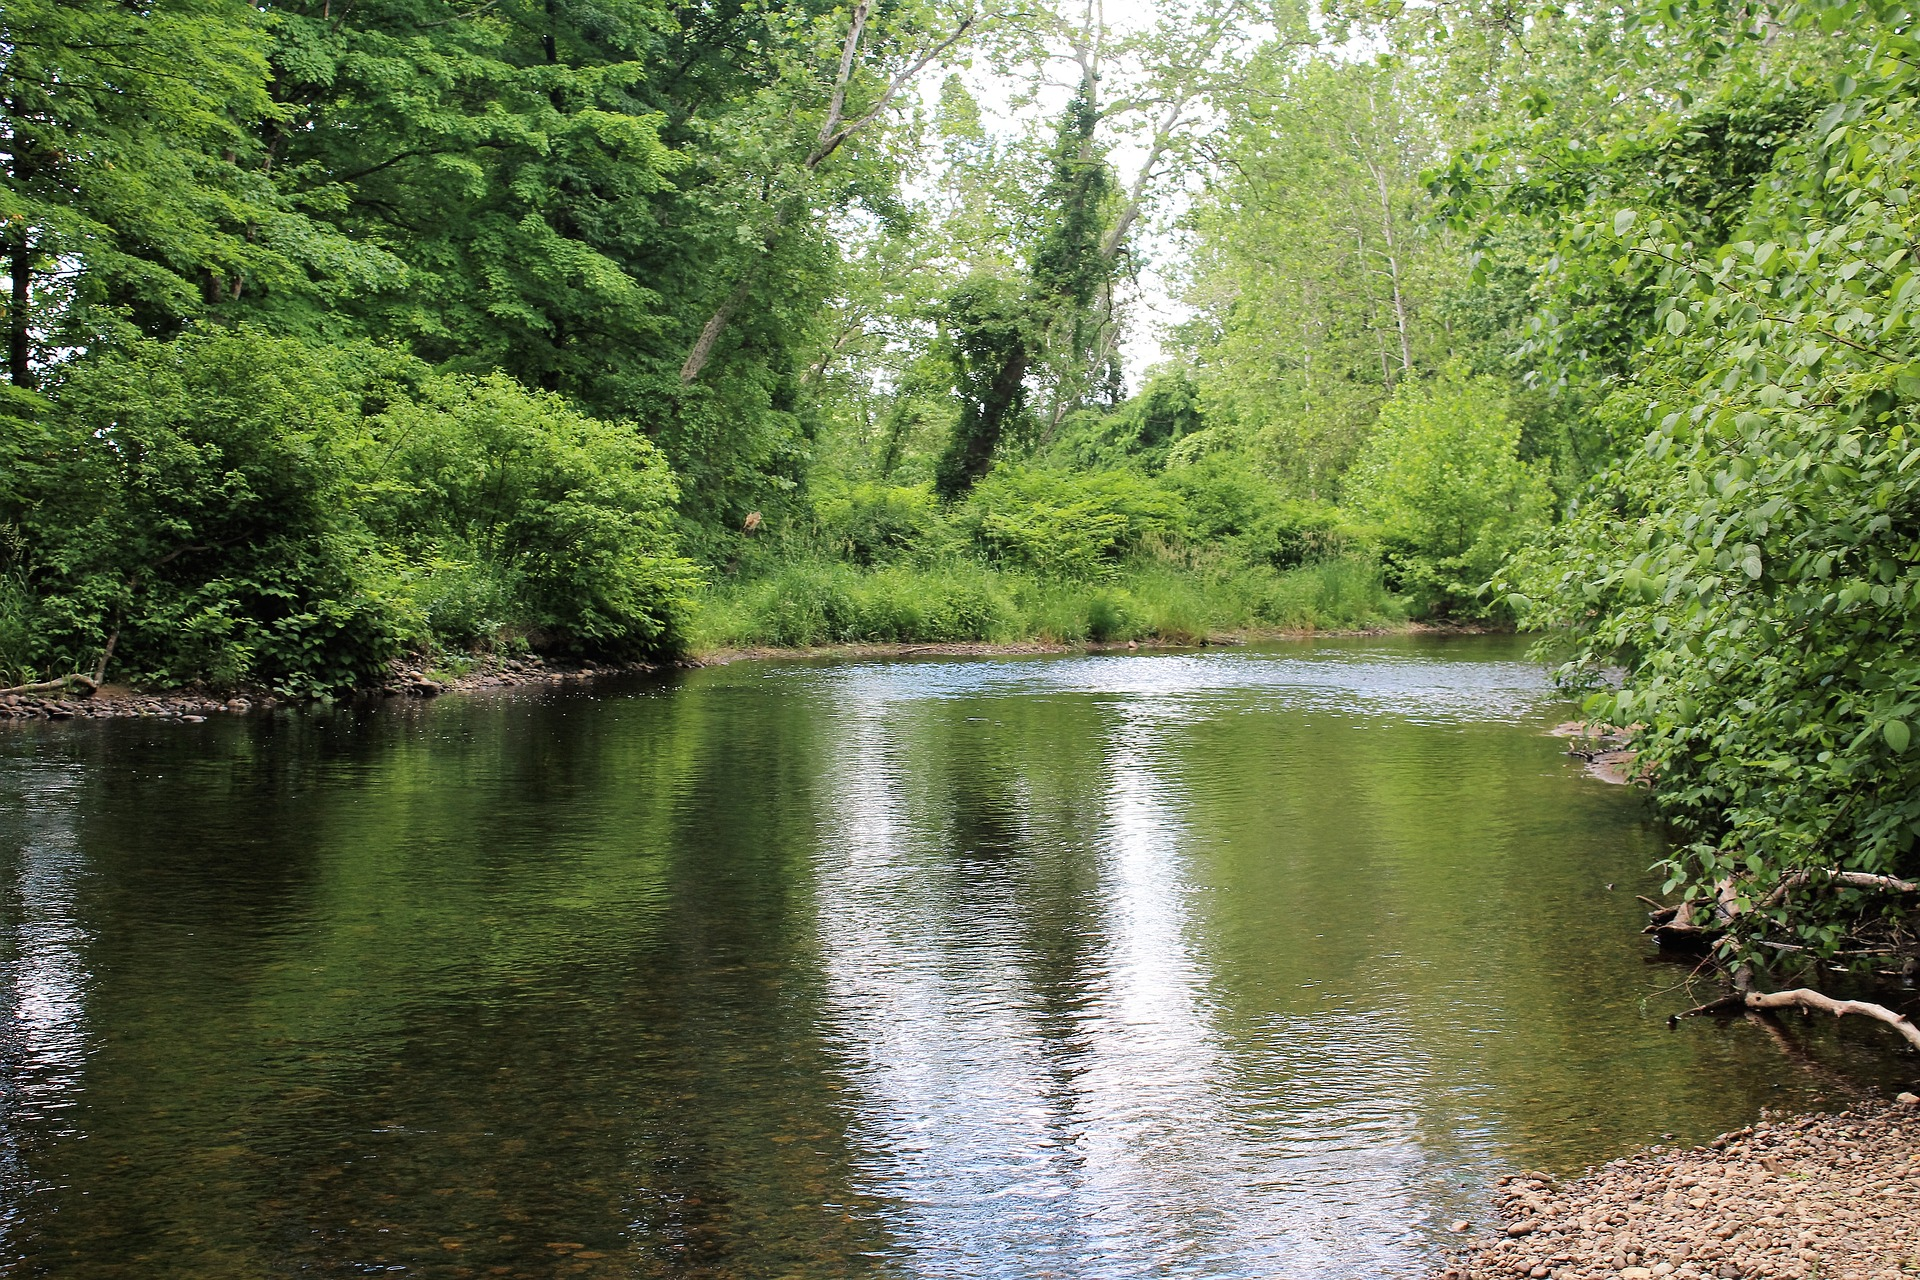 The two scenic rivers located in East Hanover are both beautiful to look at and fun to enjoy.